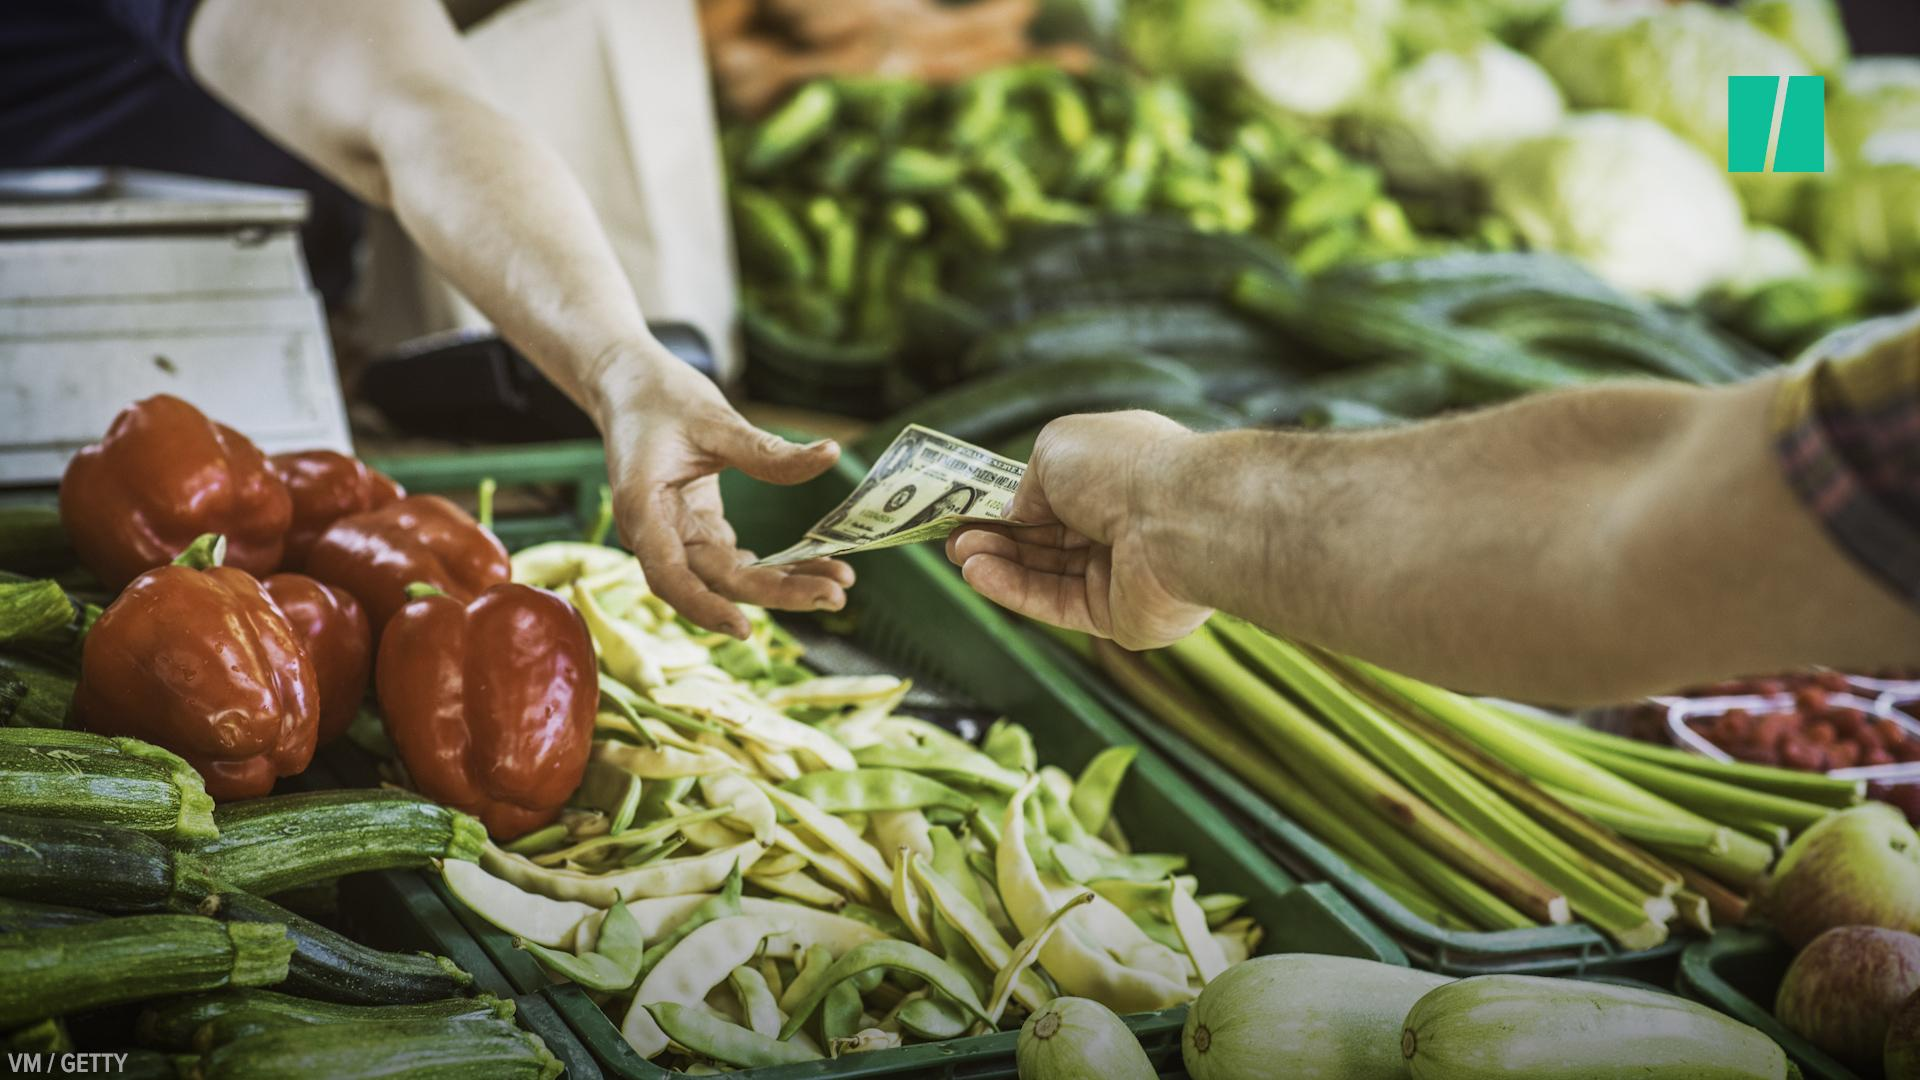 20 Simple Ways To Save Money On Groceries   HuffPost Life